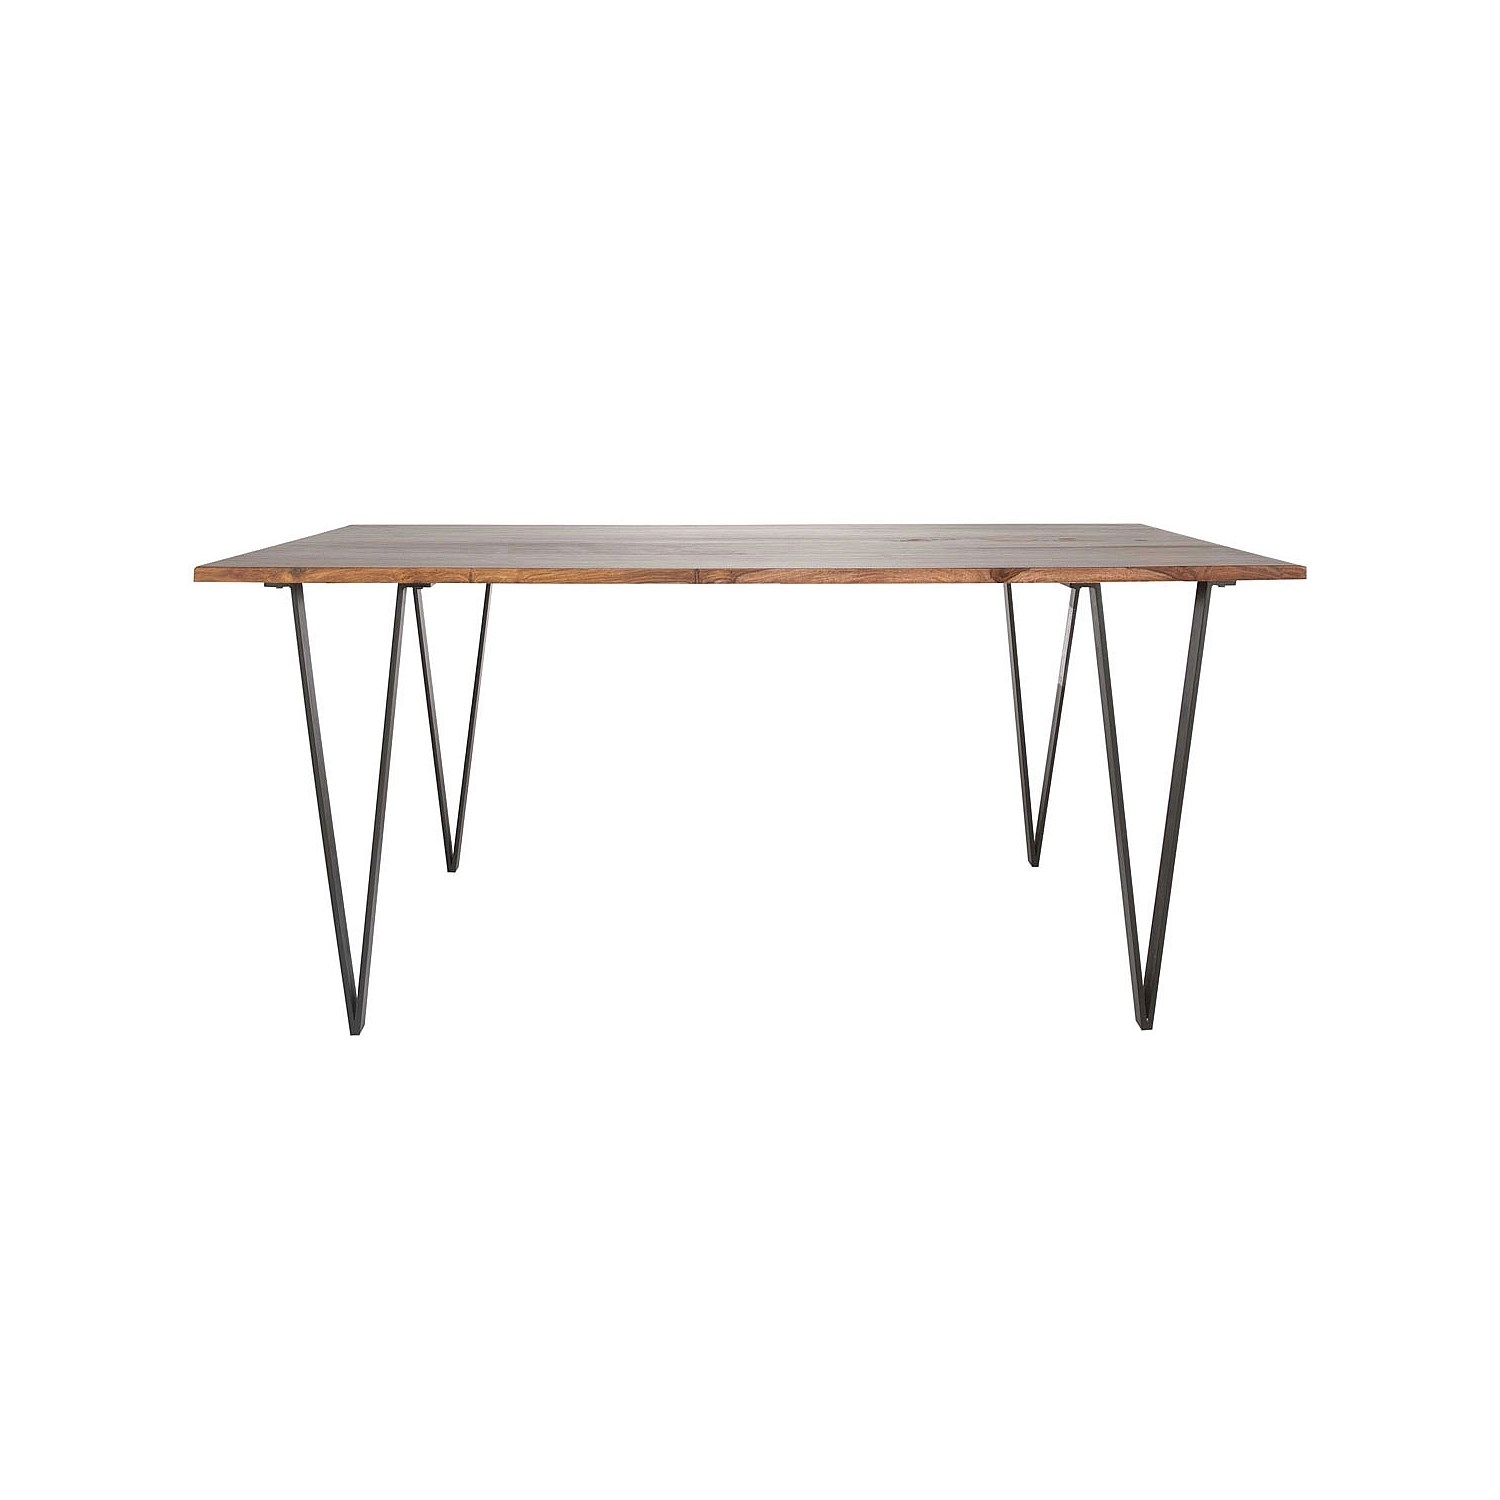 Dining Tables – Wyatt Dining Table 175X90Cm Inside Current Artisanal Dining Tables (Image 15 of 20)